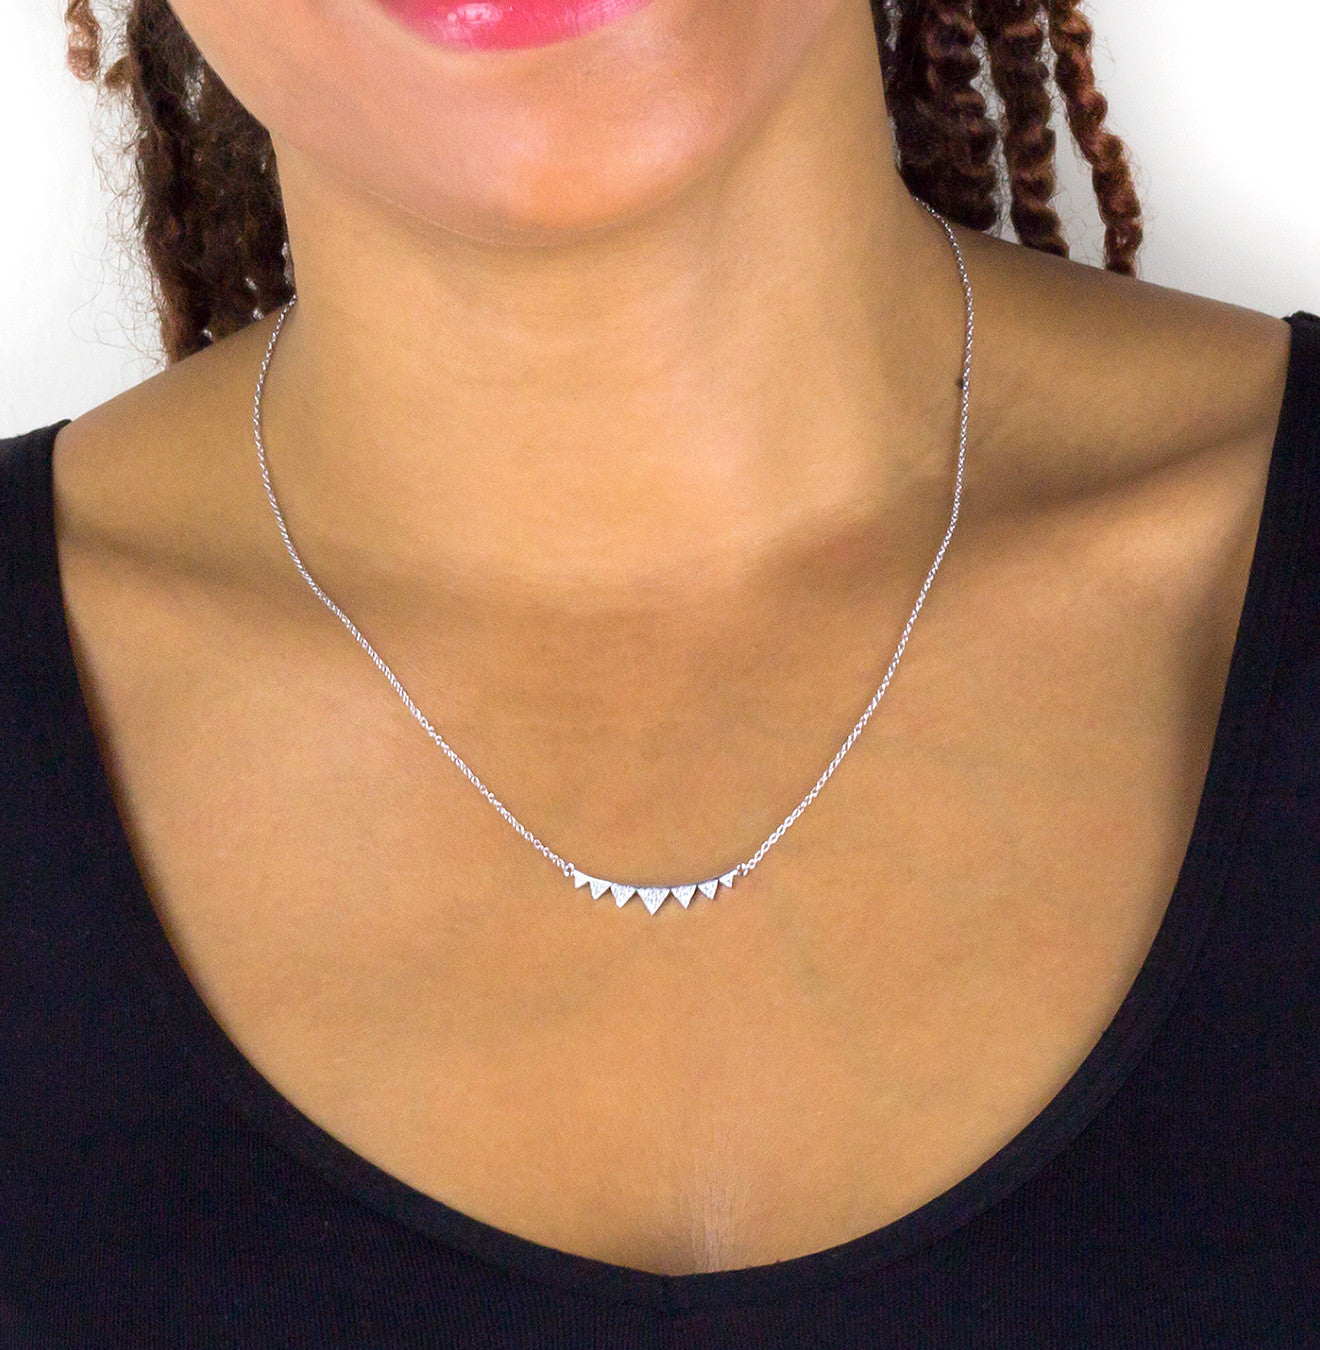 Spiky Bar Pendant Necklace - Silver 925